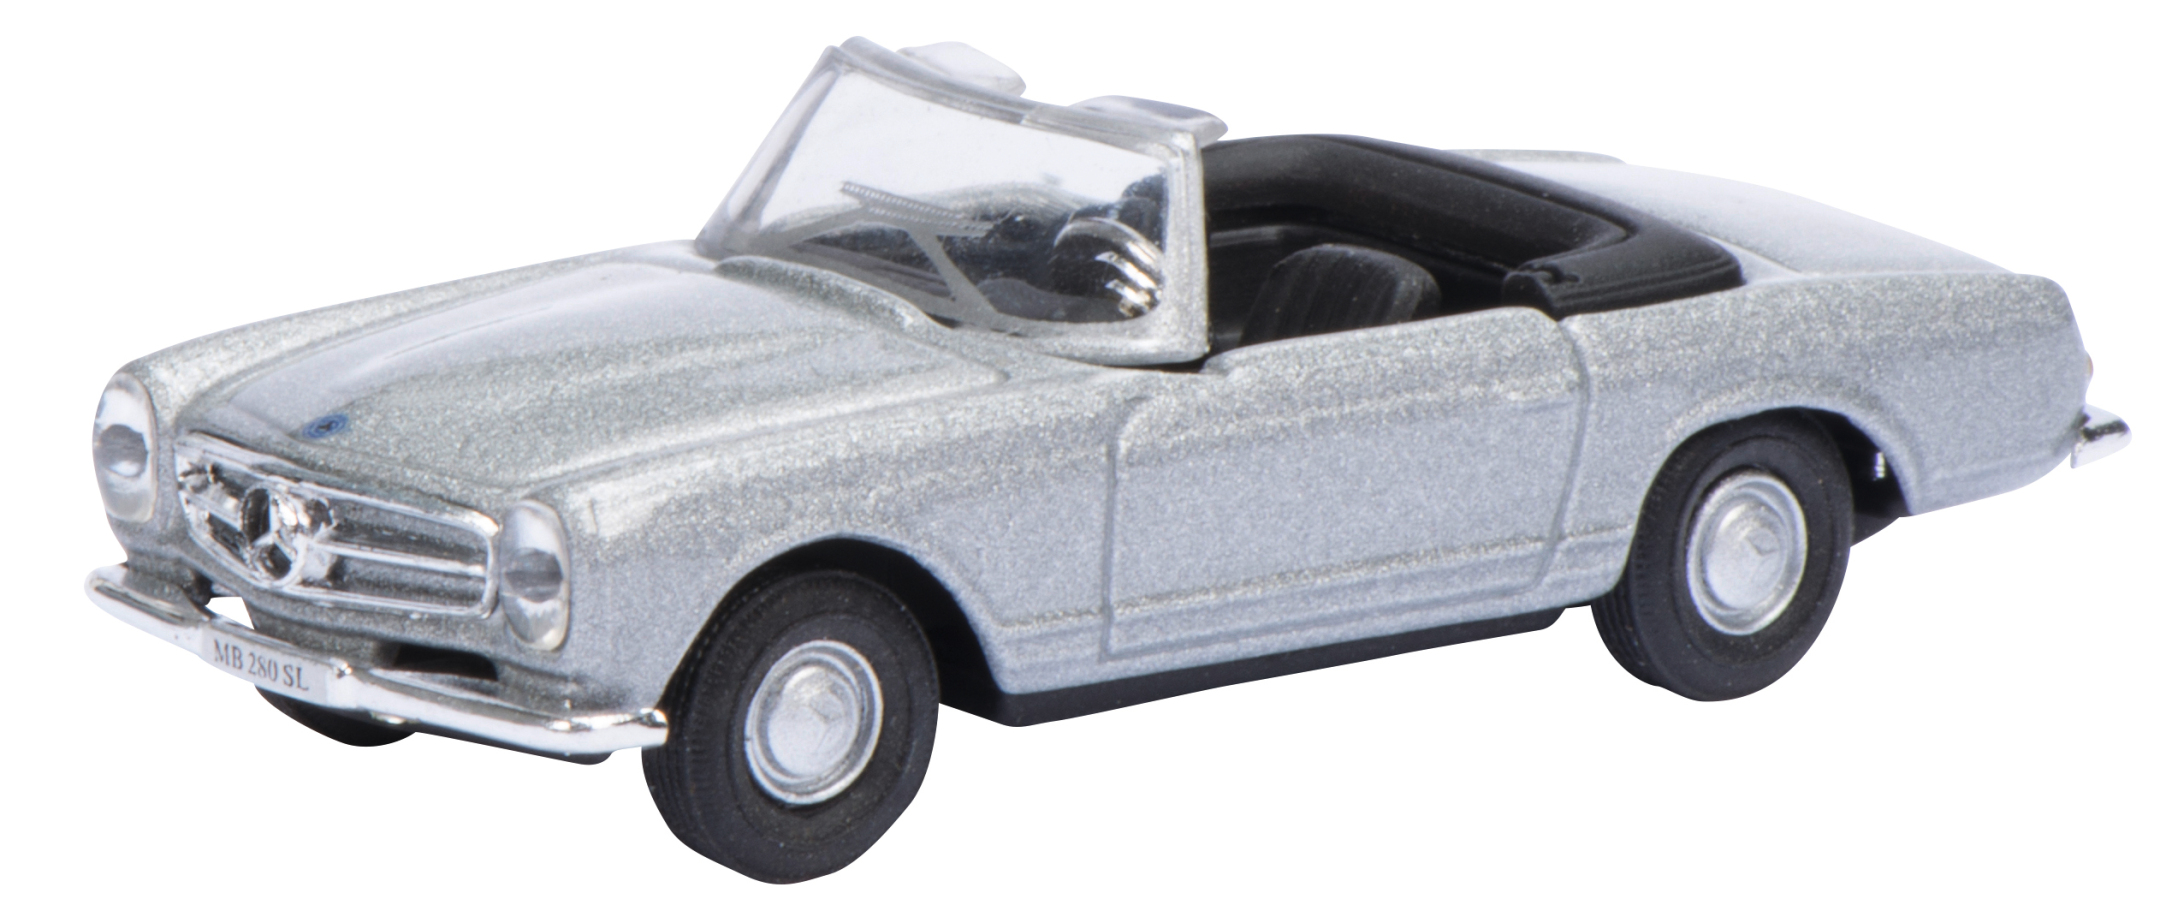 Mercedes Benz SL 280 pagode opened